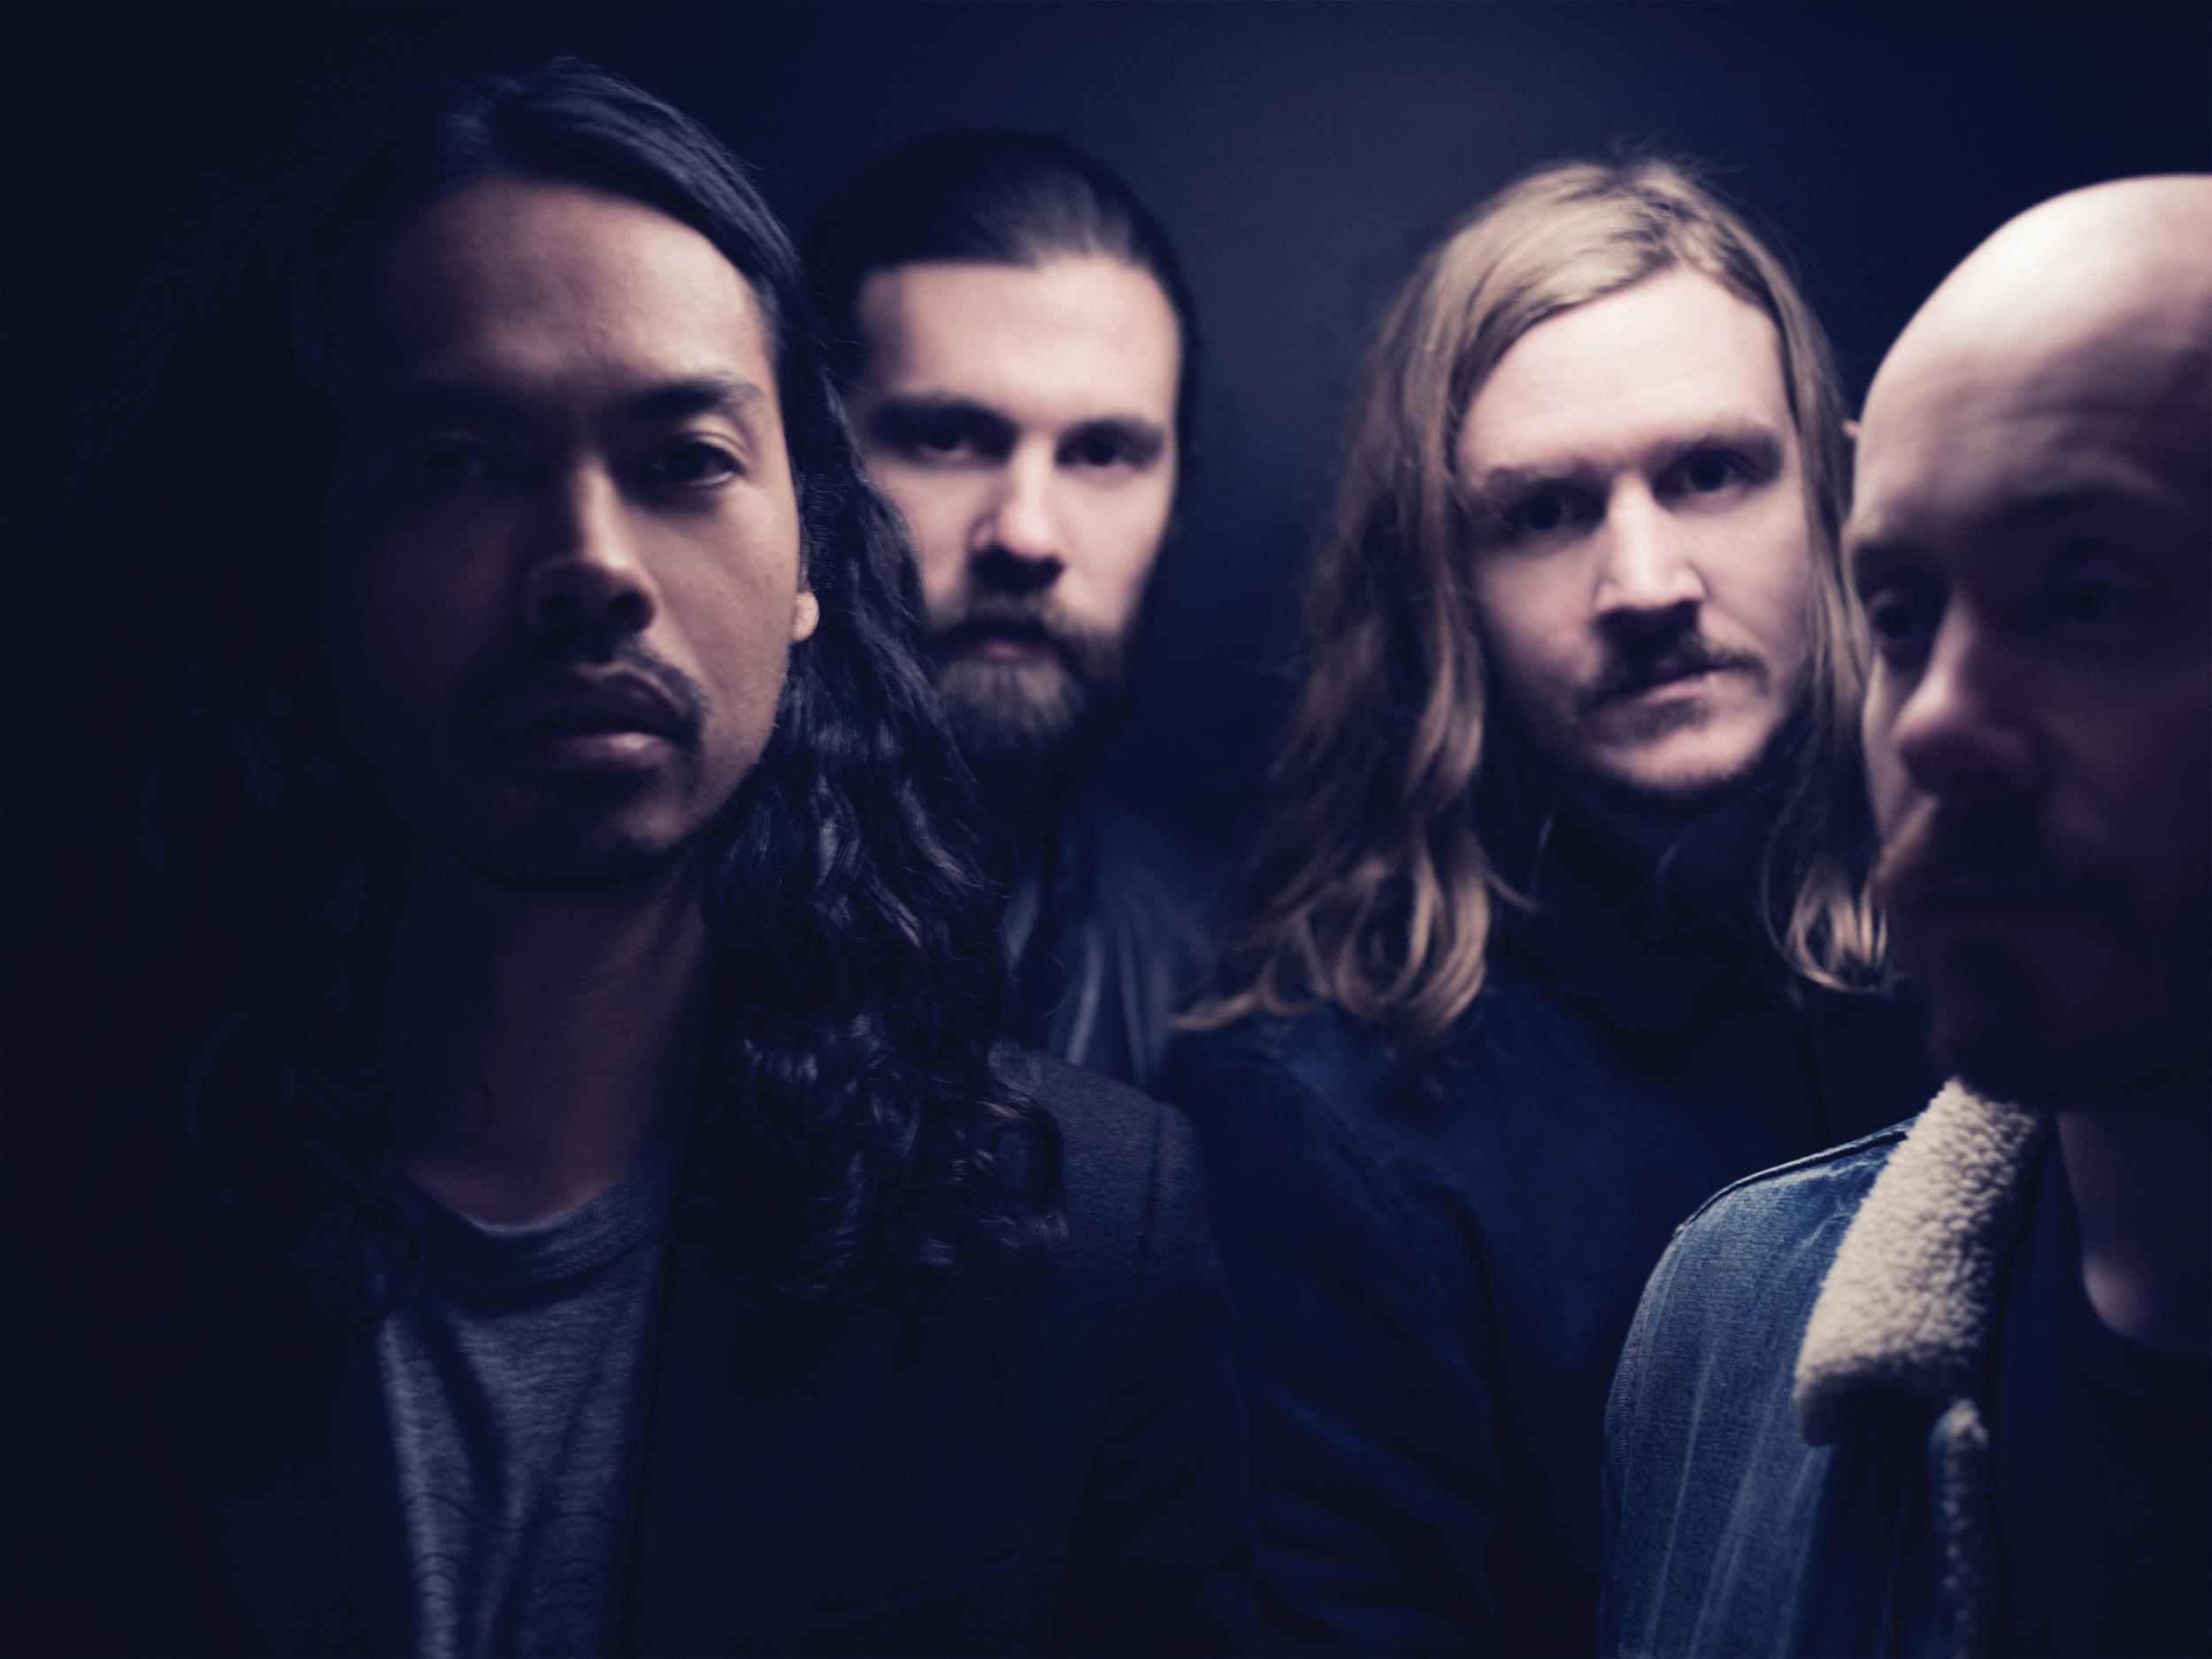 The Temper Trap announced as the headlining act for Splashy Fen 2017. Get the details here.